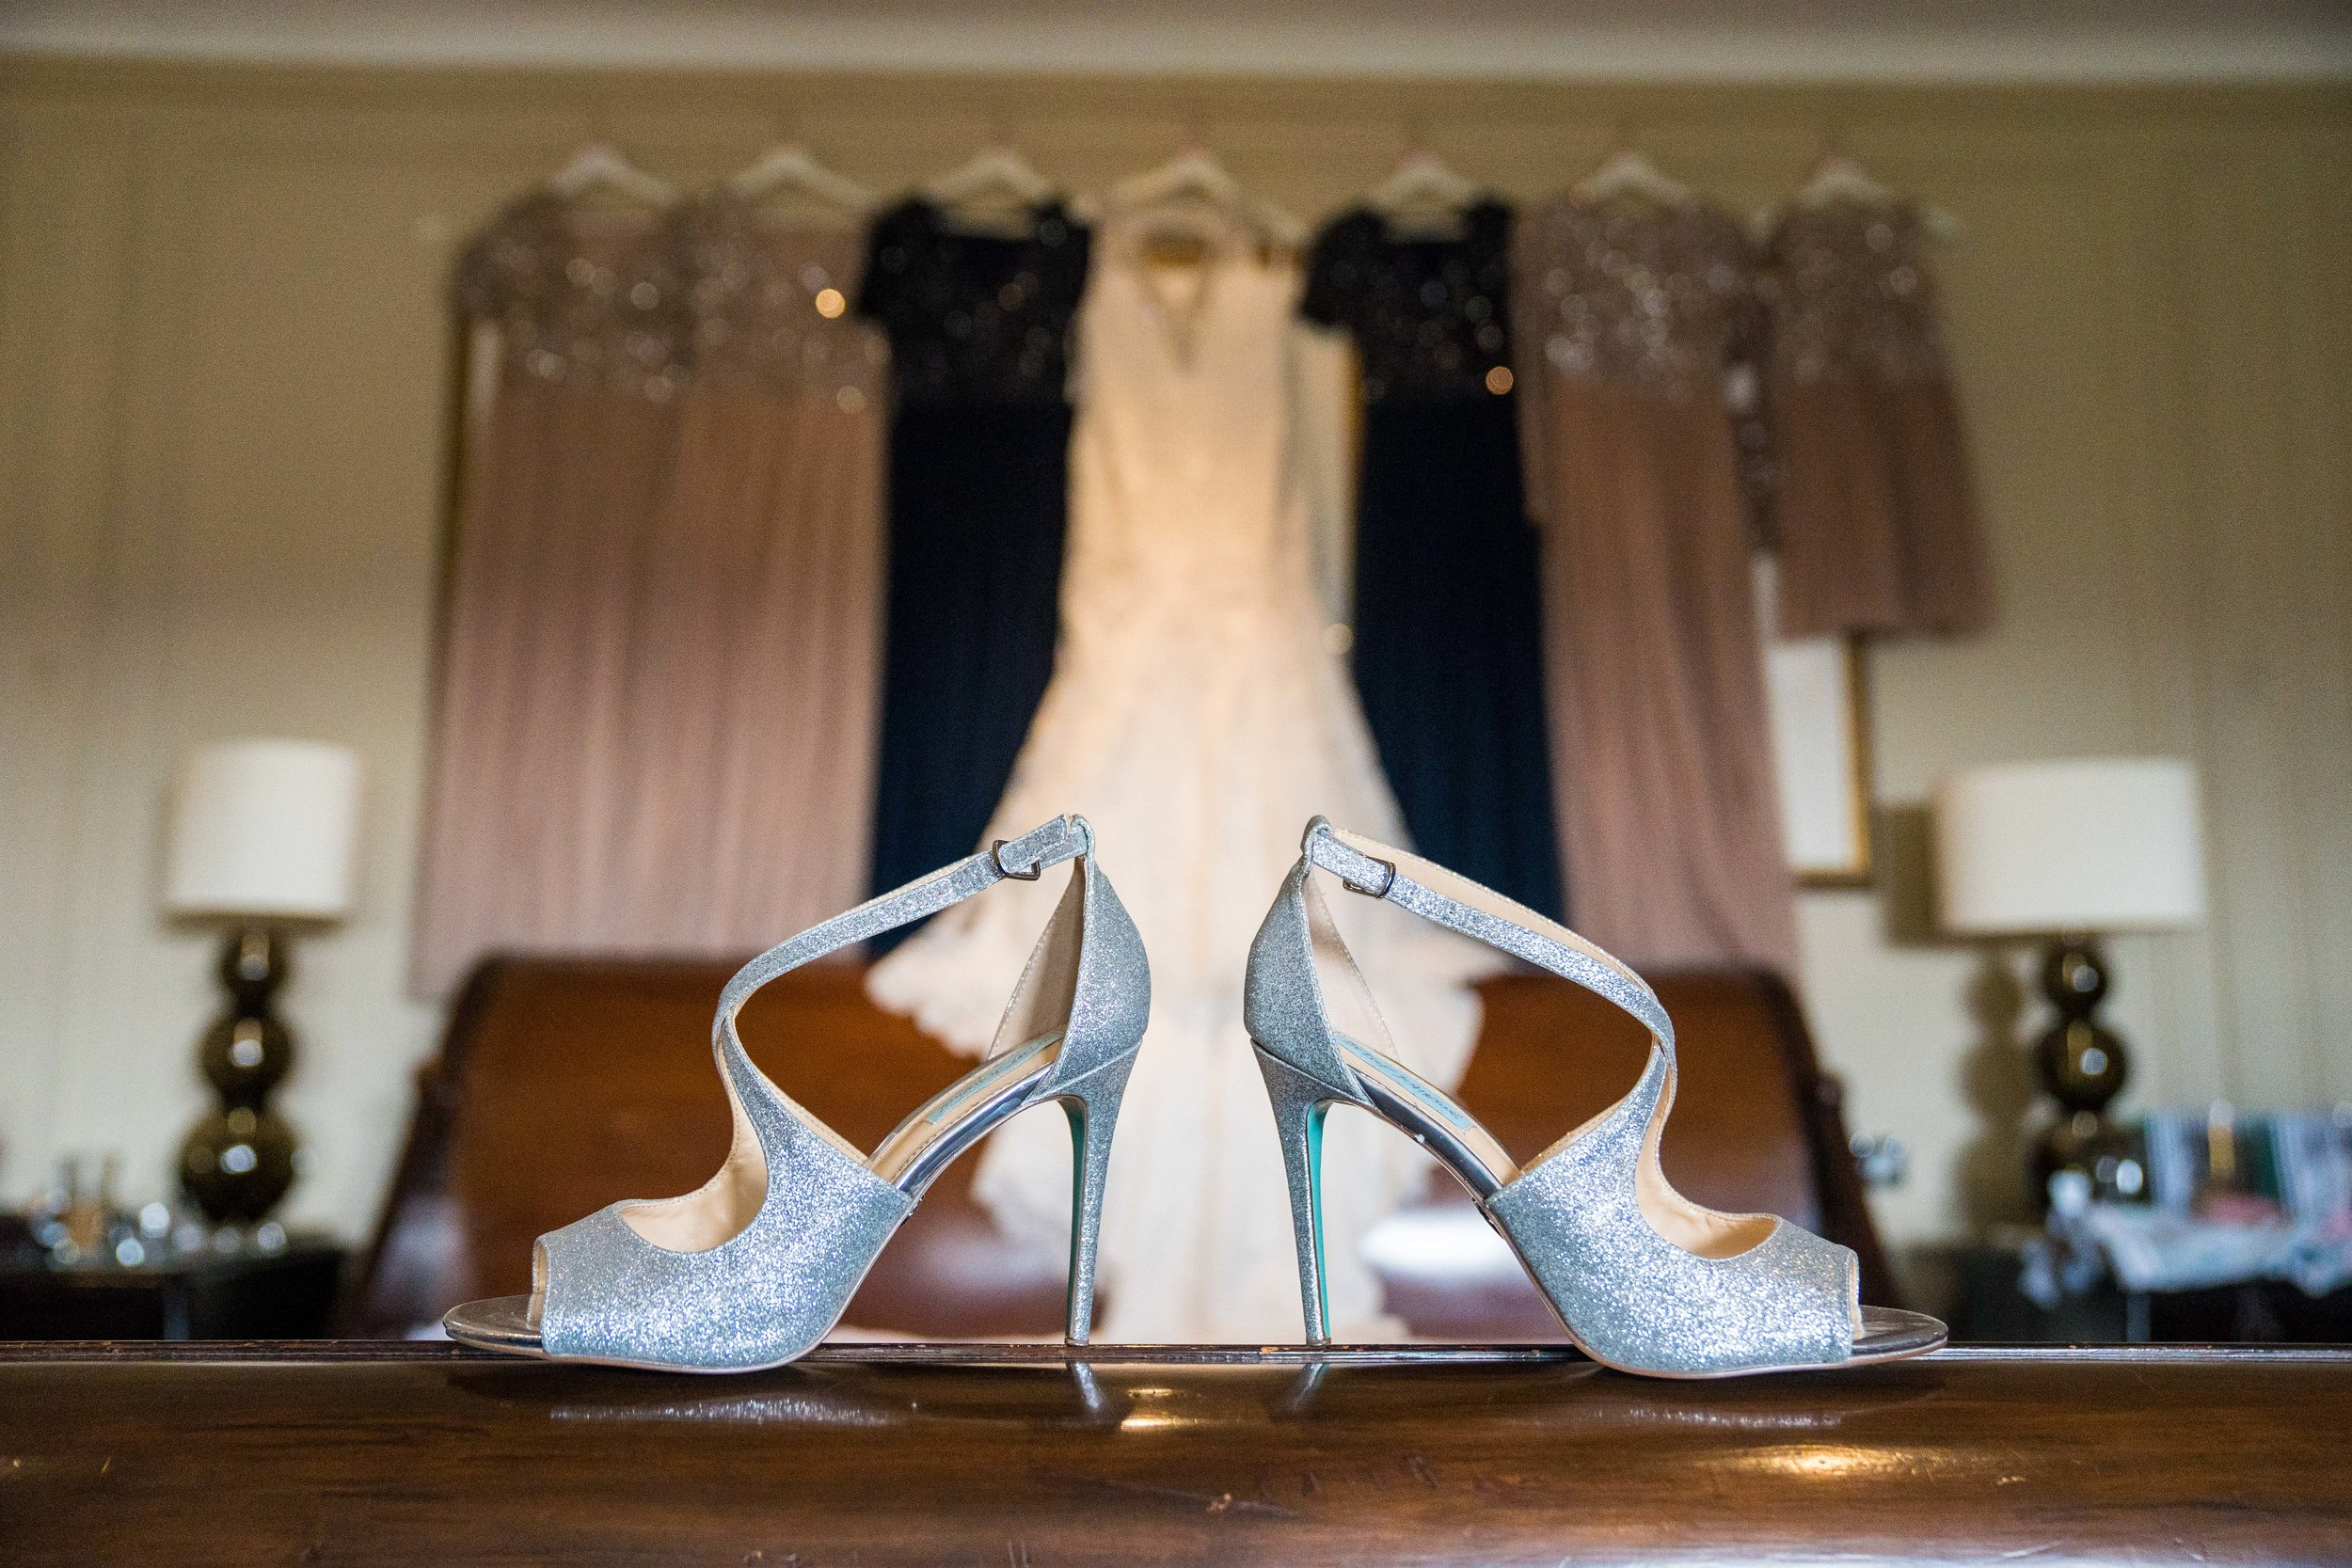 london-surrey-wedding-photography-nutfieldpriory-shoes-1211